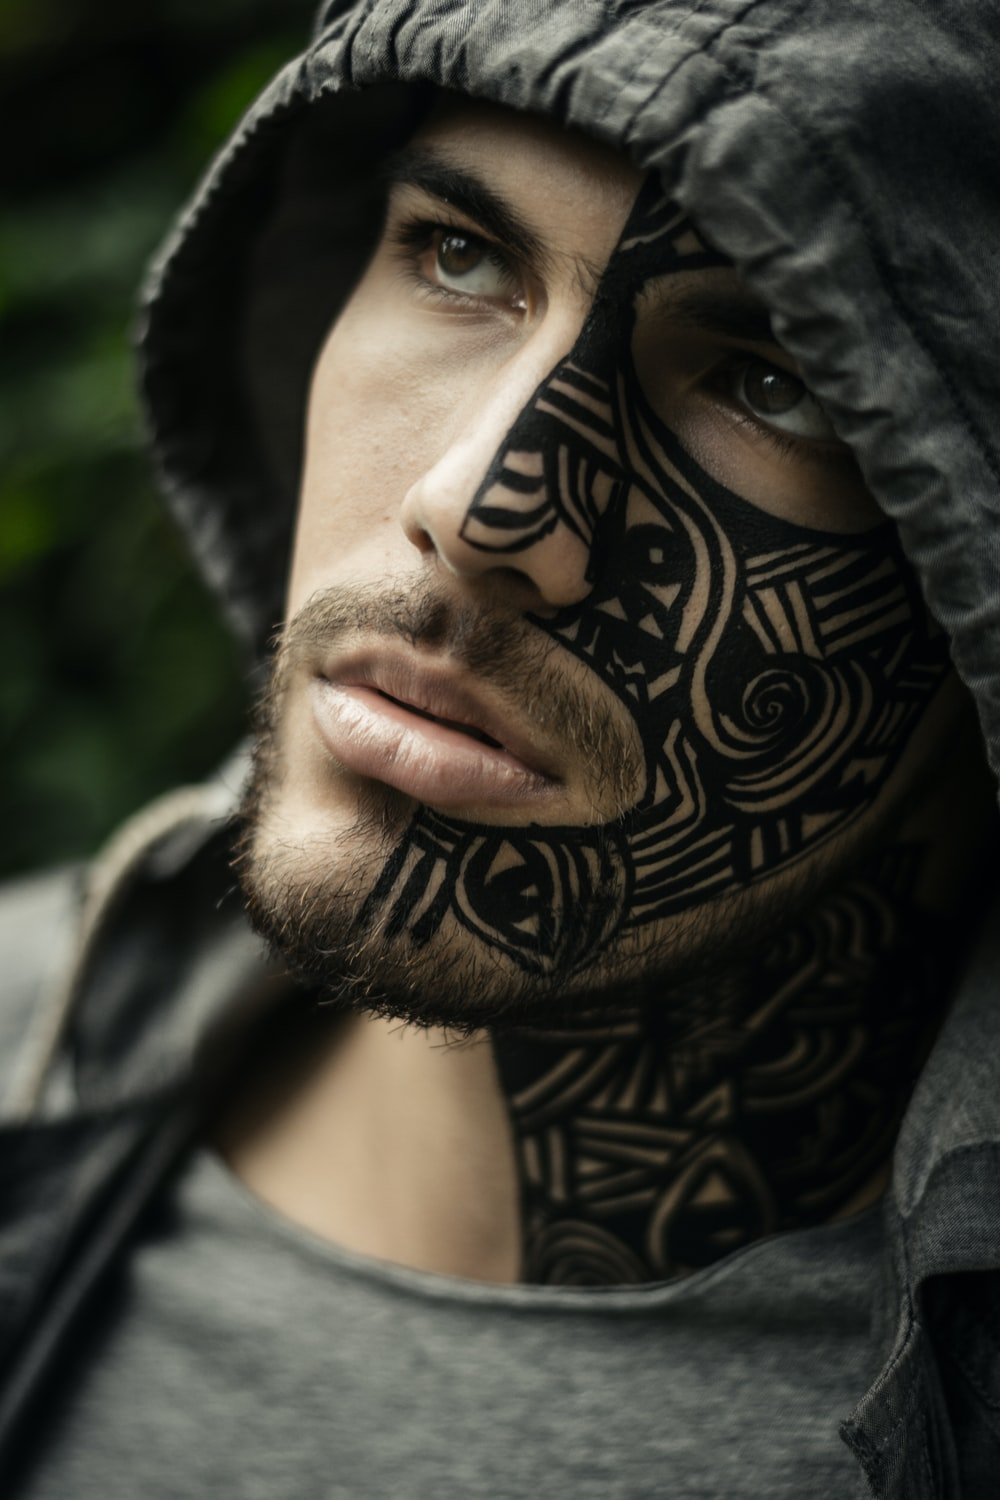 man with face tattoo wearing gray hoodie